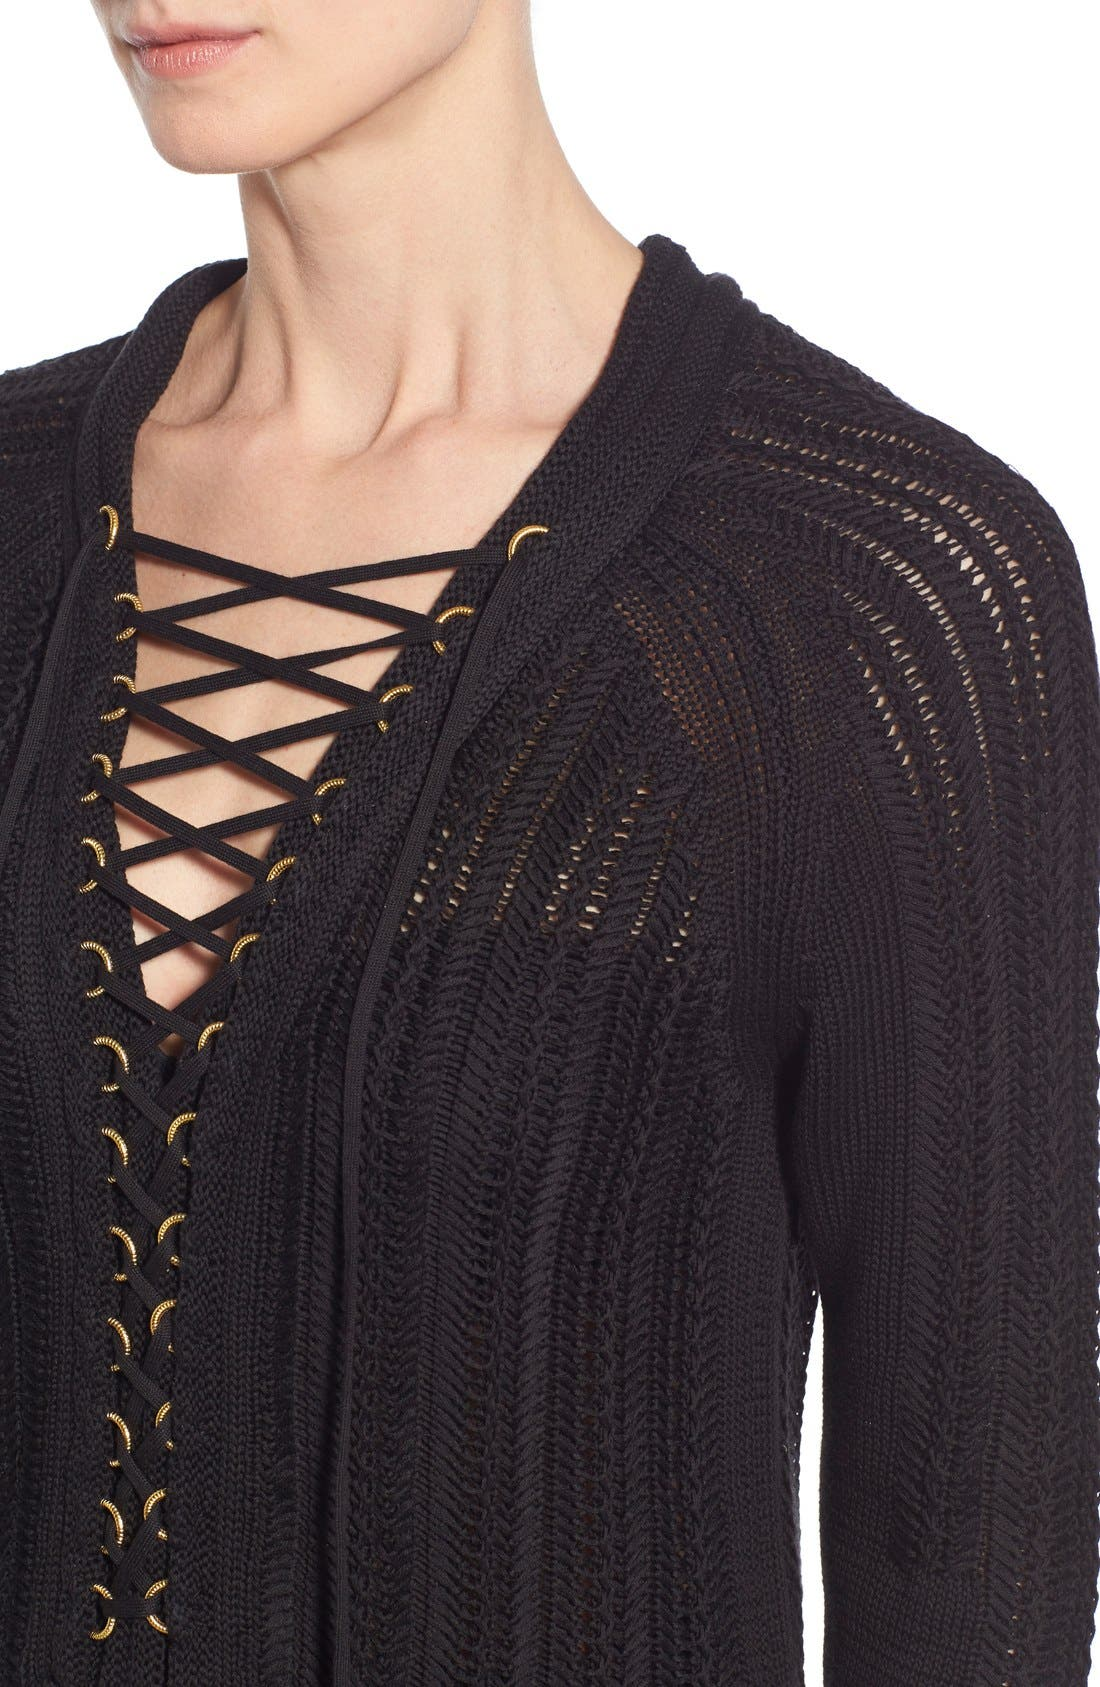 'Daria' Lace Up Textured V-Neck Sweater,                             Alternate thumbnail 3, color,                             001